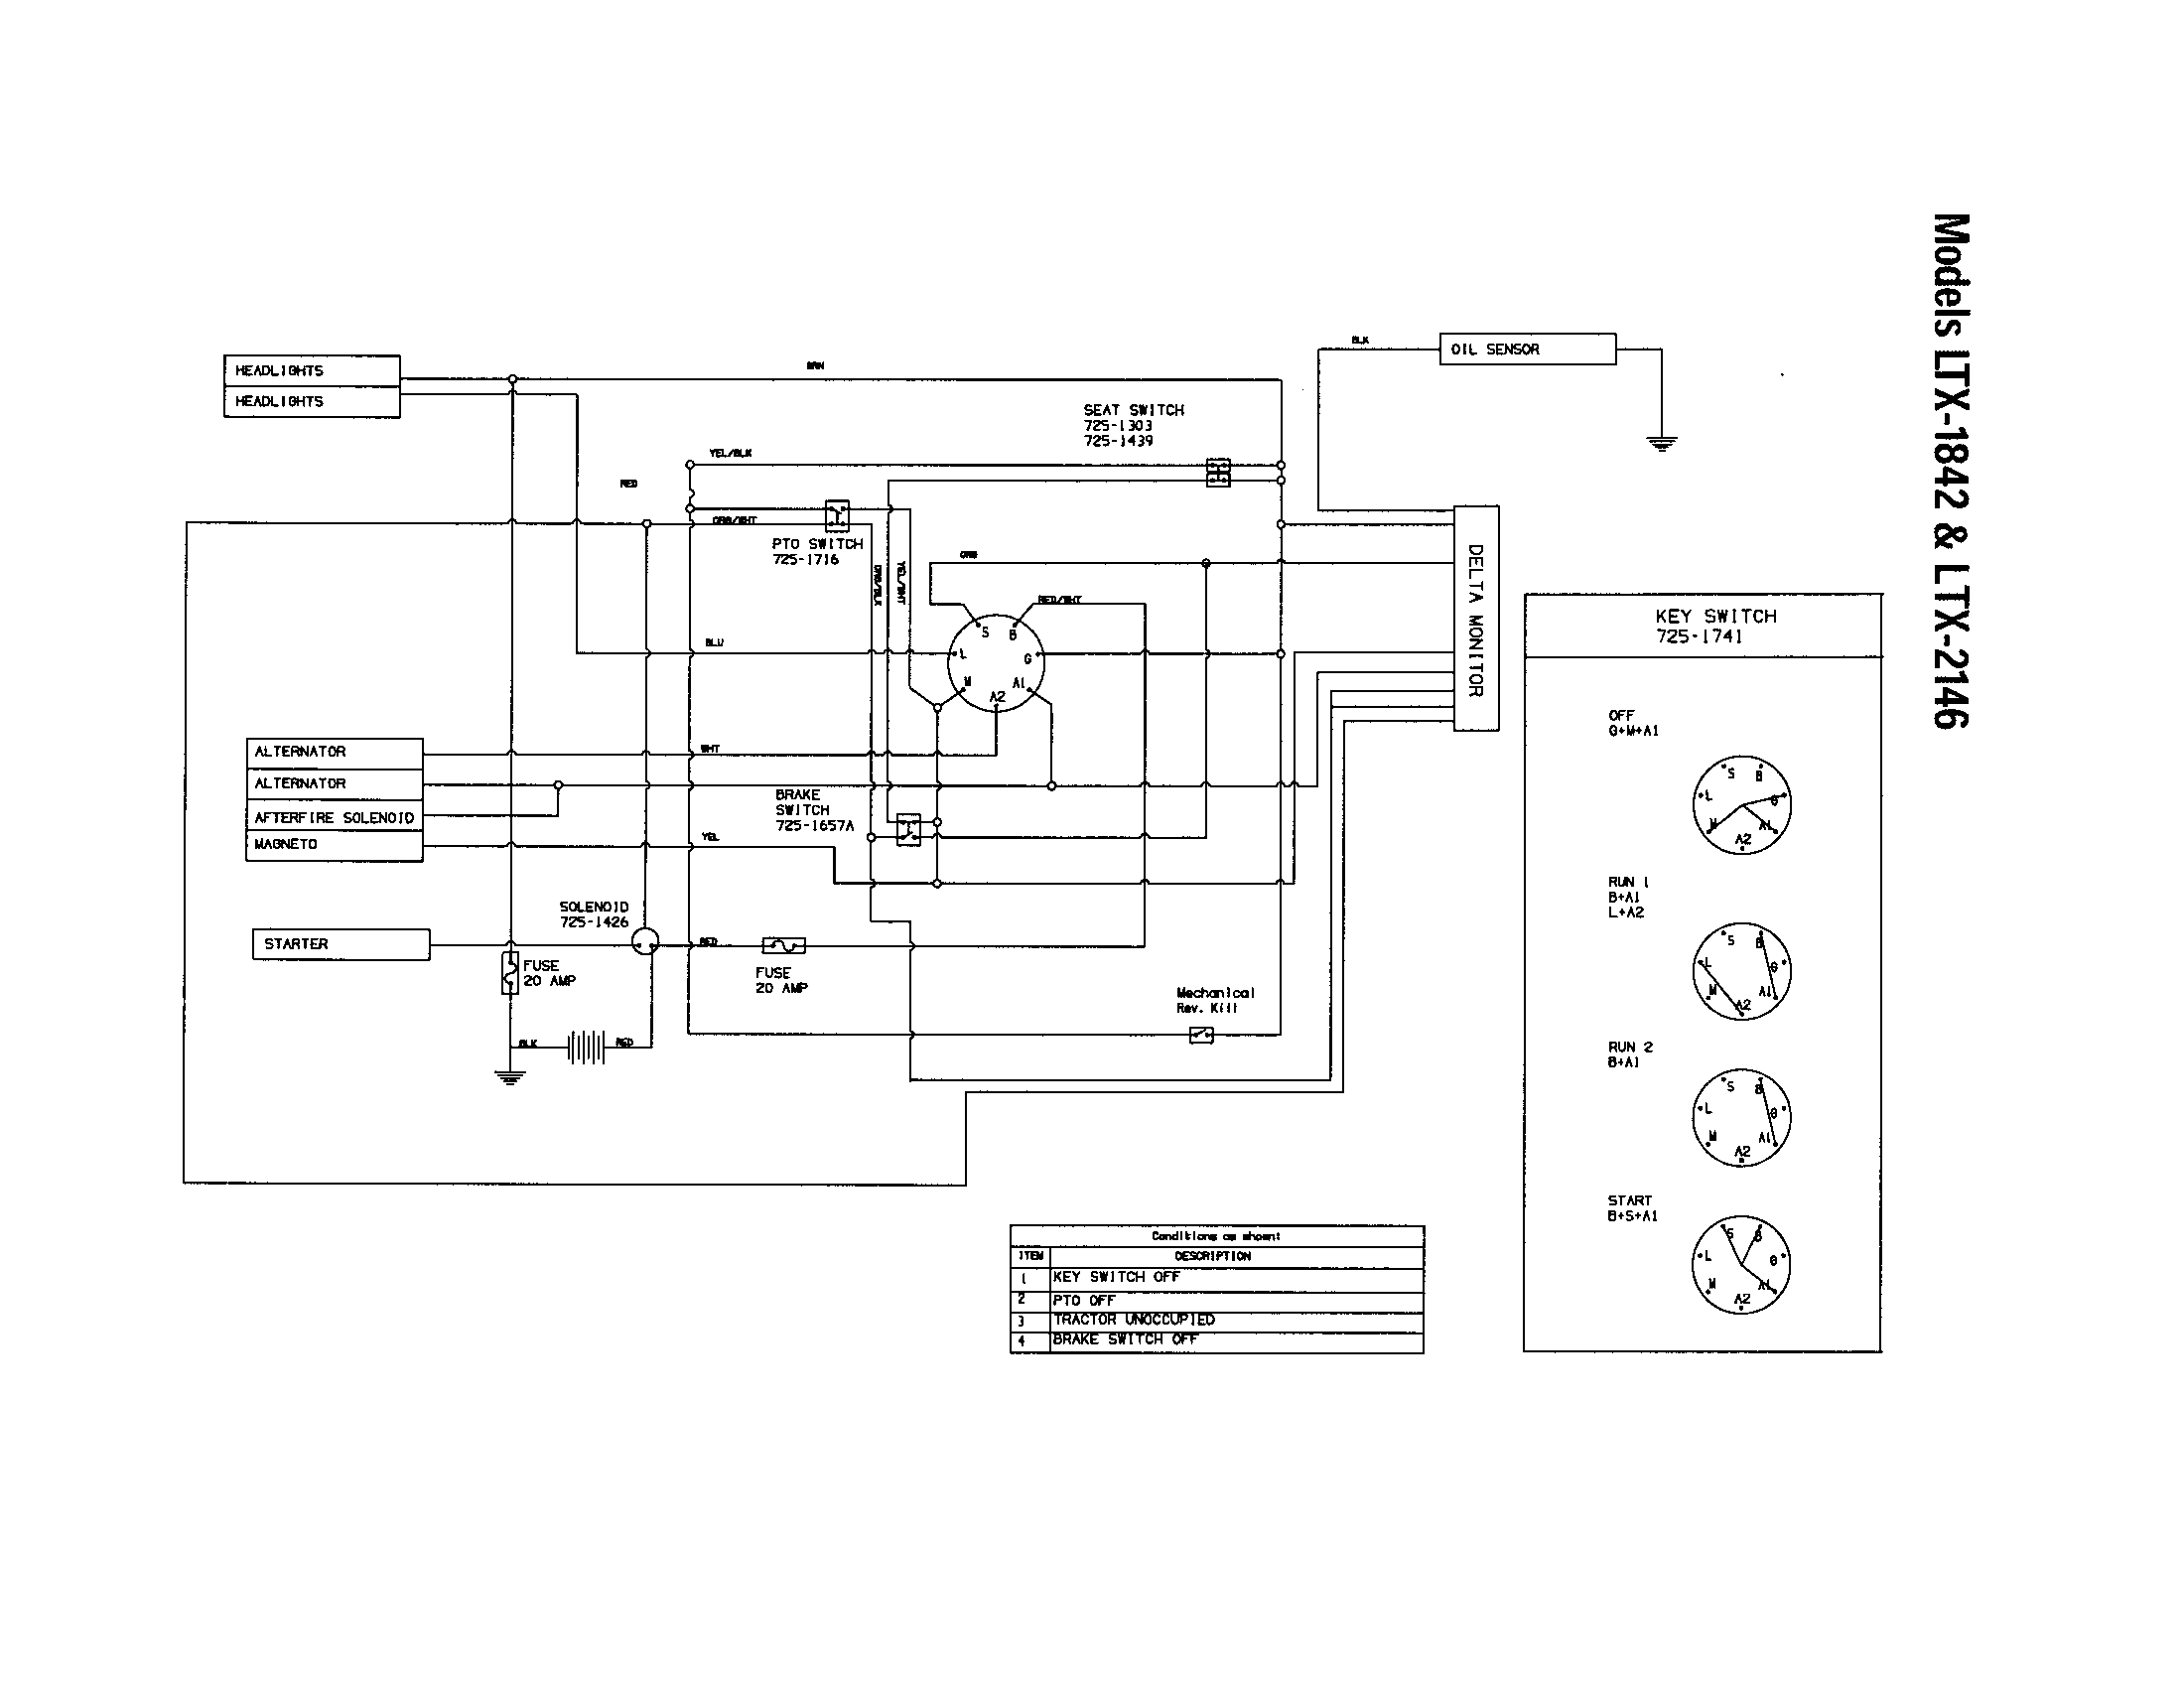 5f6fdf170ac50150de0653e8e97fb173 wiring diagram diagram & parts list for model 13ap609g063 troybilt troy bilt pony wiring schematics at n-0.co